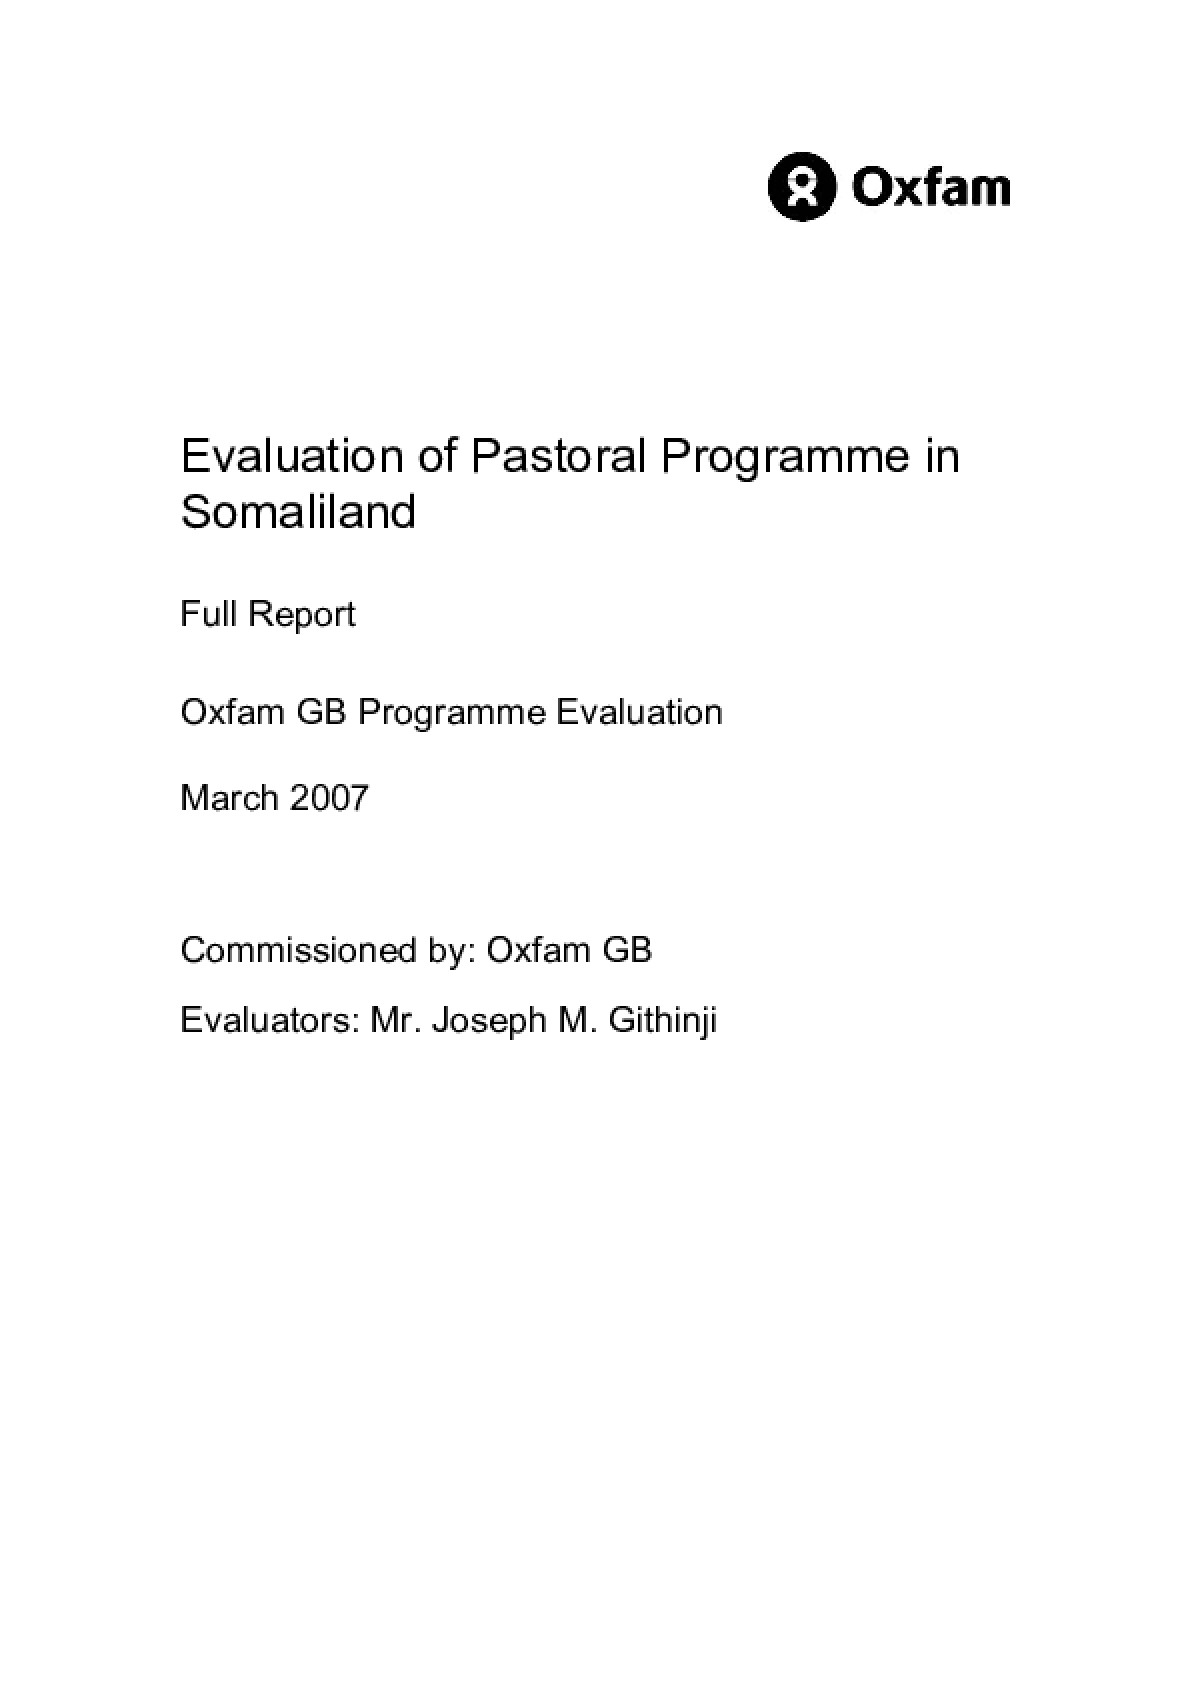 Evaluation of Pastoral Programme in Somaliland